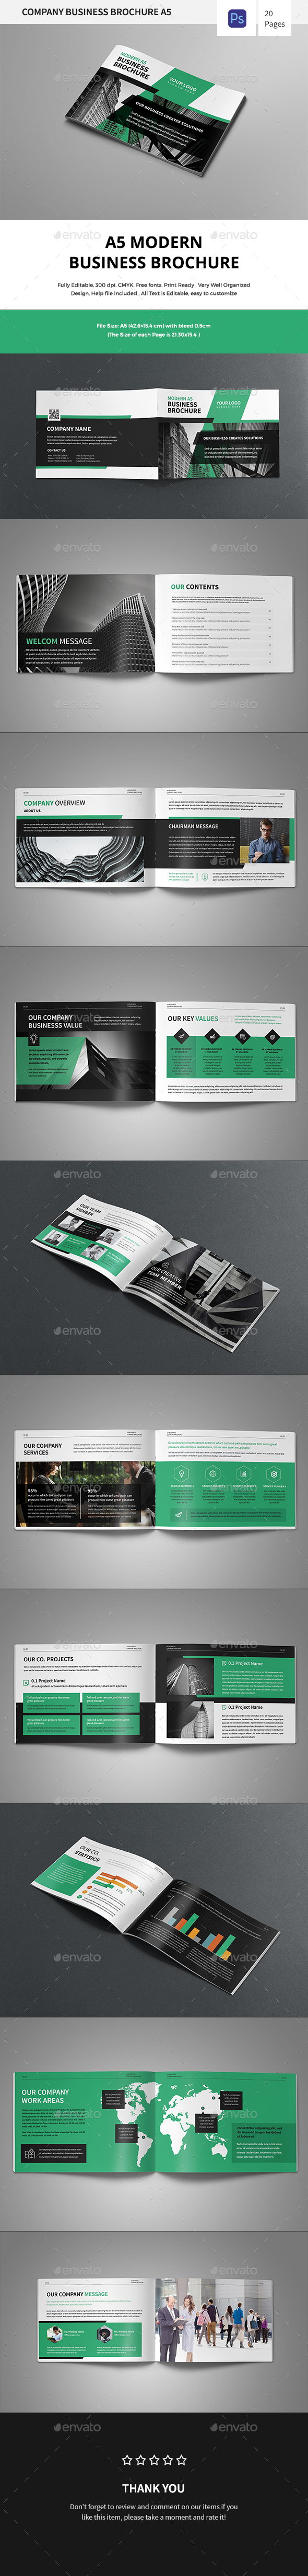 A5 Corporate Bausiness Brochure - Corporate Brochures